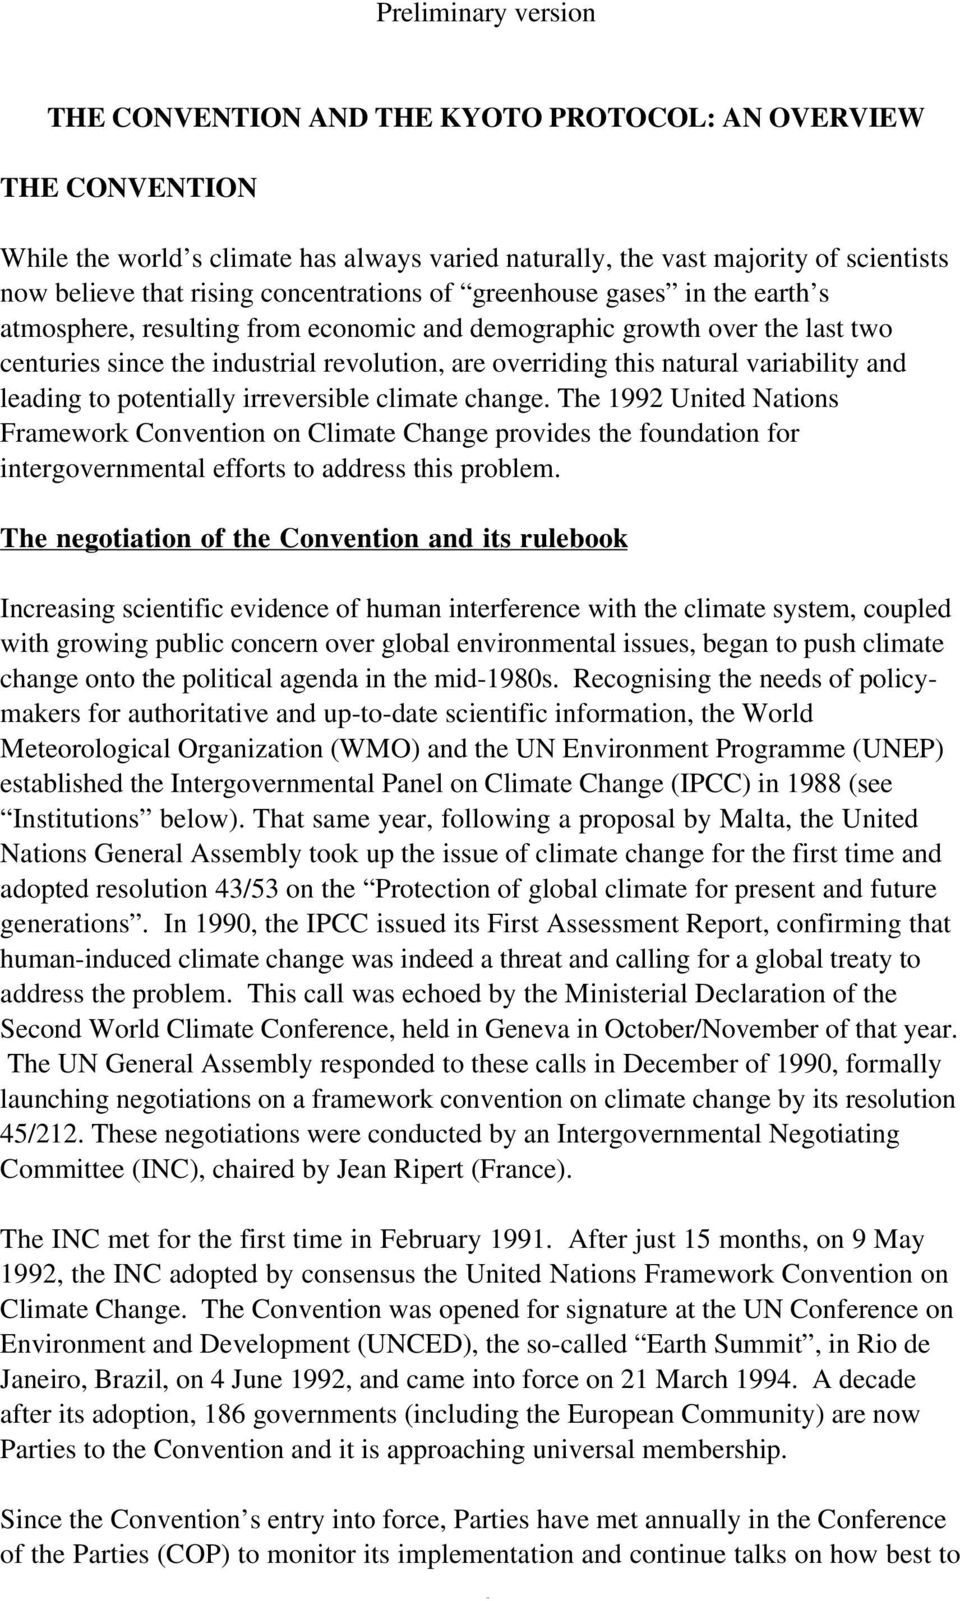 leading to potentially irreversible climate change. The 1992 United Nations Framework Convention on Climate Change provides the foundation for intergovernmental efforts to address this problem.